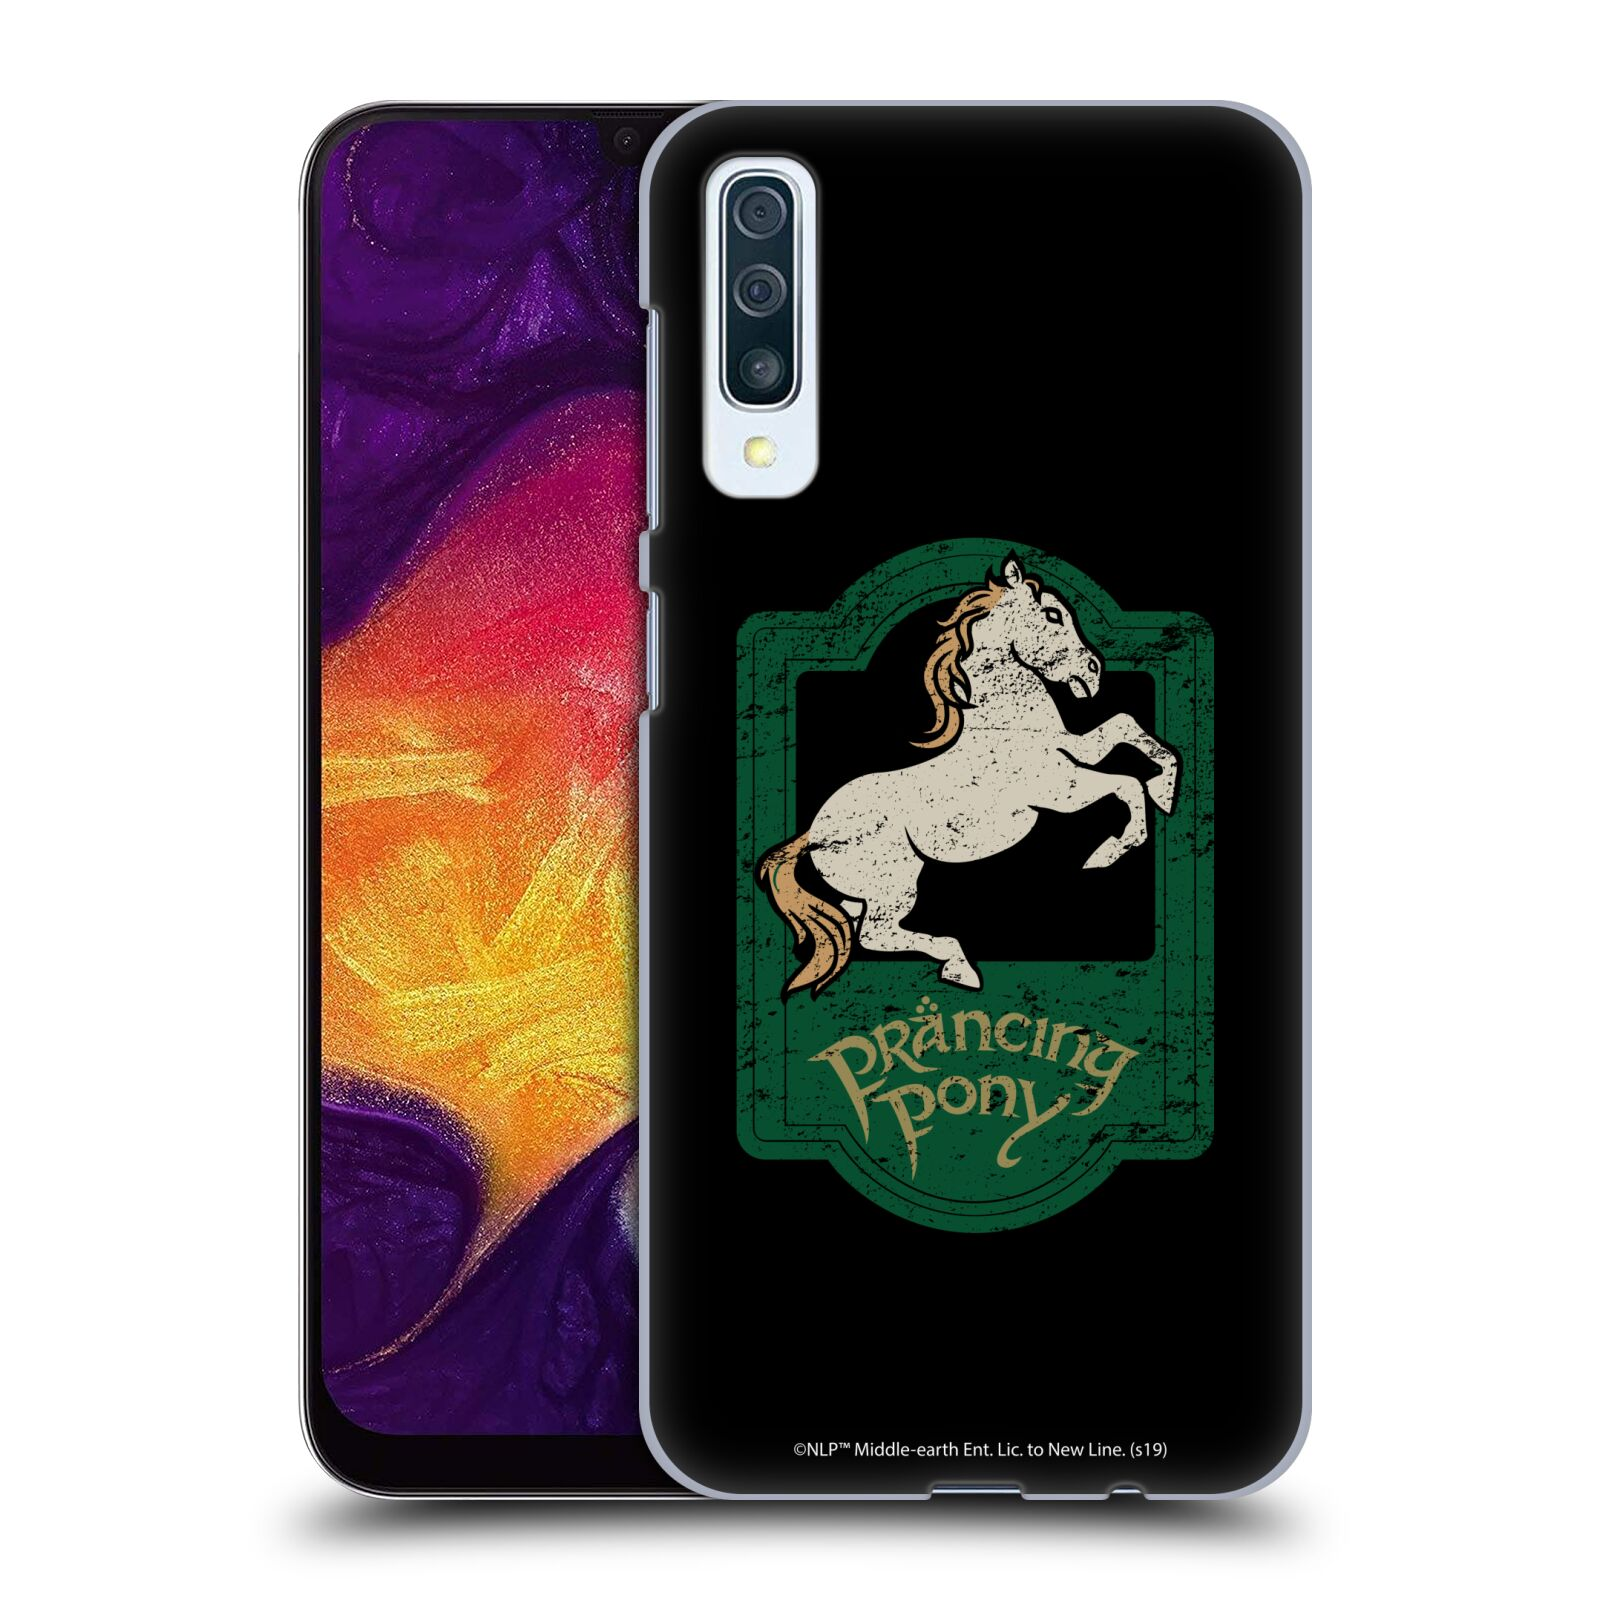 Official The Lord Of The Rings: The Fellowship Of The Ring Graphics Prancing Pony Case for Samsung Galaxy A50s (2019)